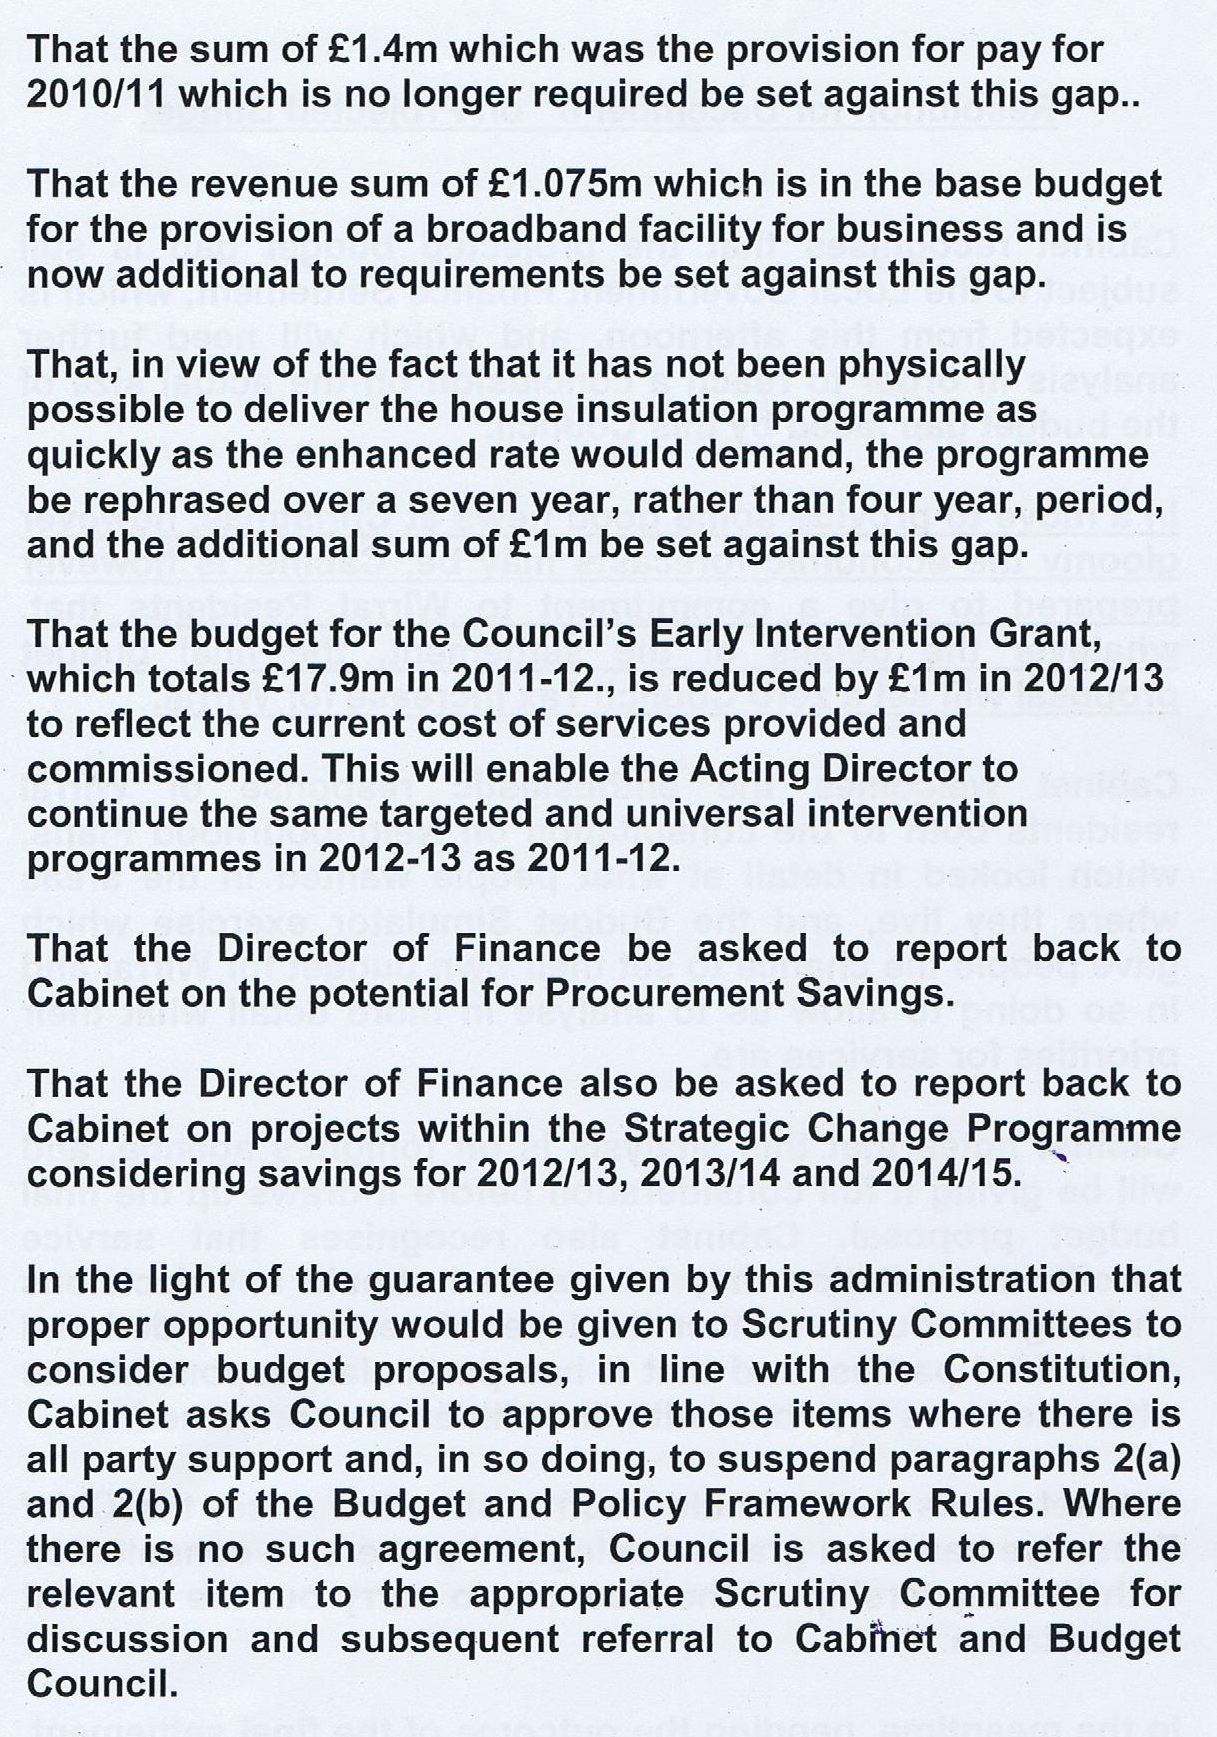 Project Budget Motion (Wirral Council) Cabinet 8th December 2011 Page 2 of 2